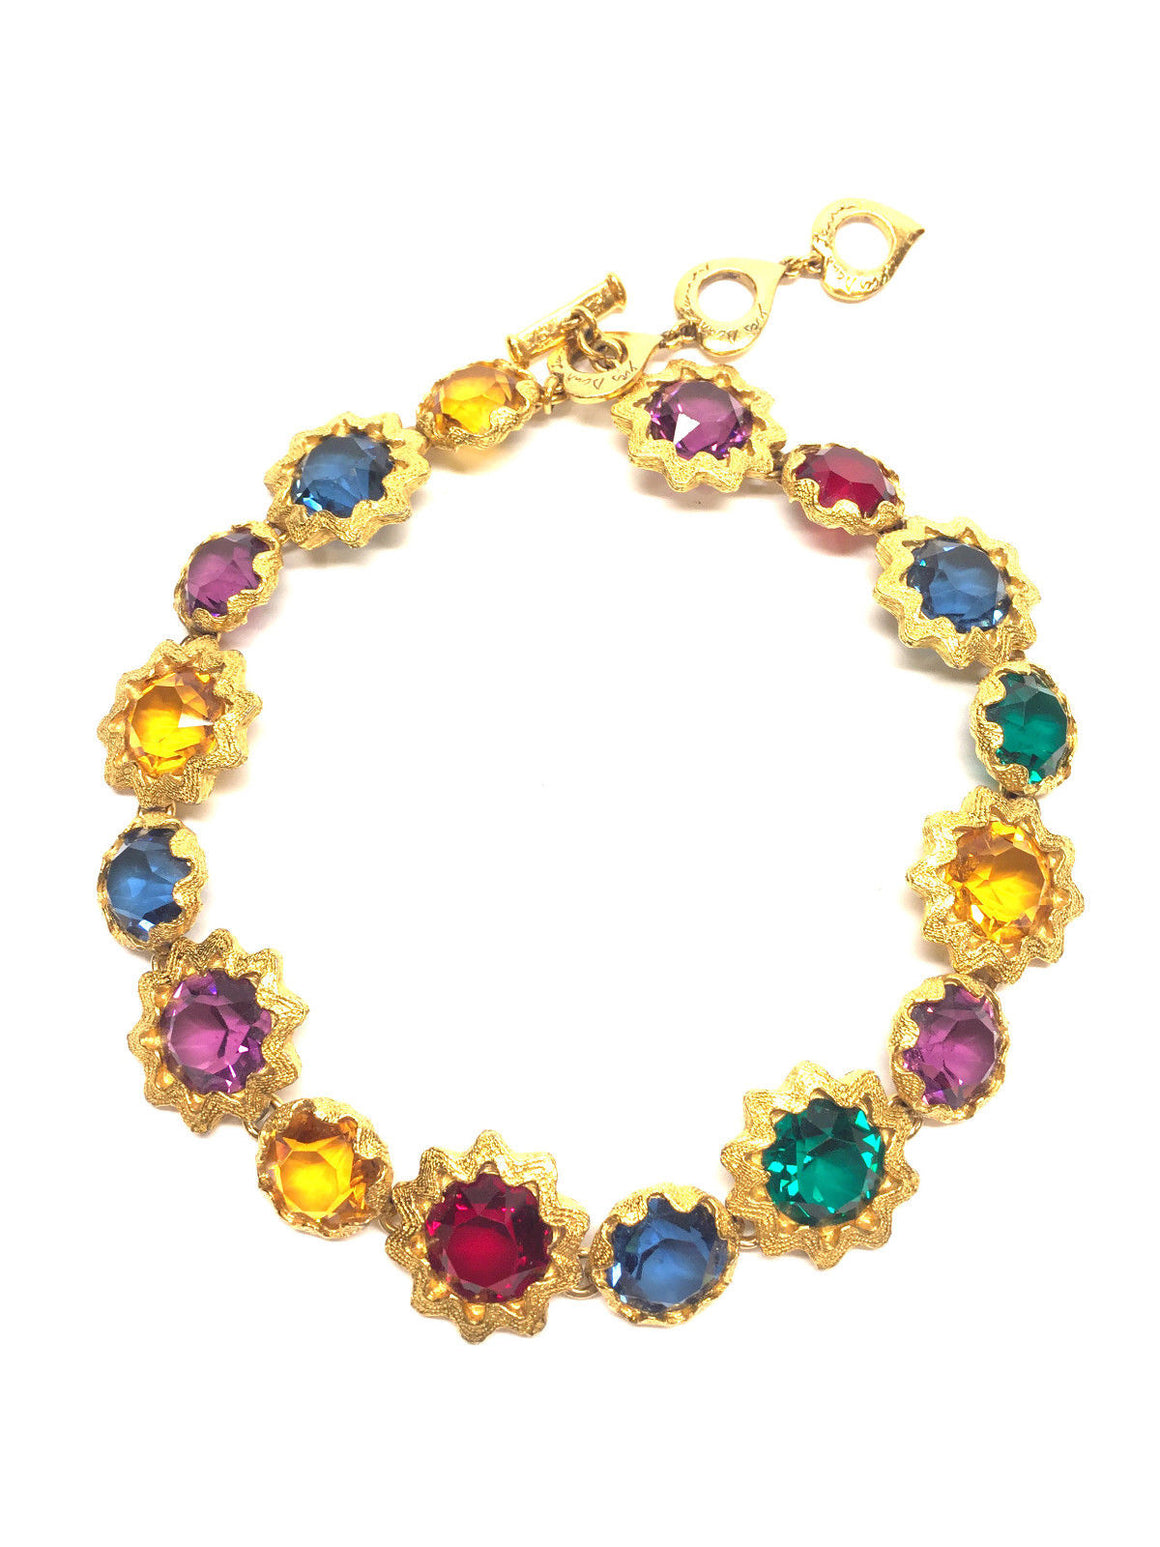 VTG YVES St.LAURENT ROBERT GOOSENS Gilt & Multicolor Crystals Statement Choker